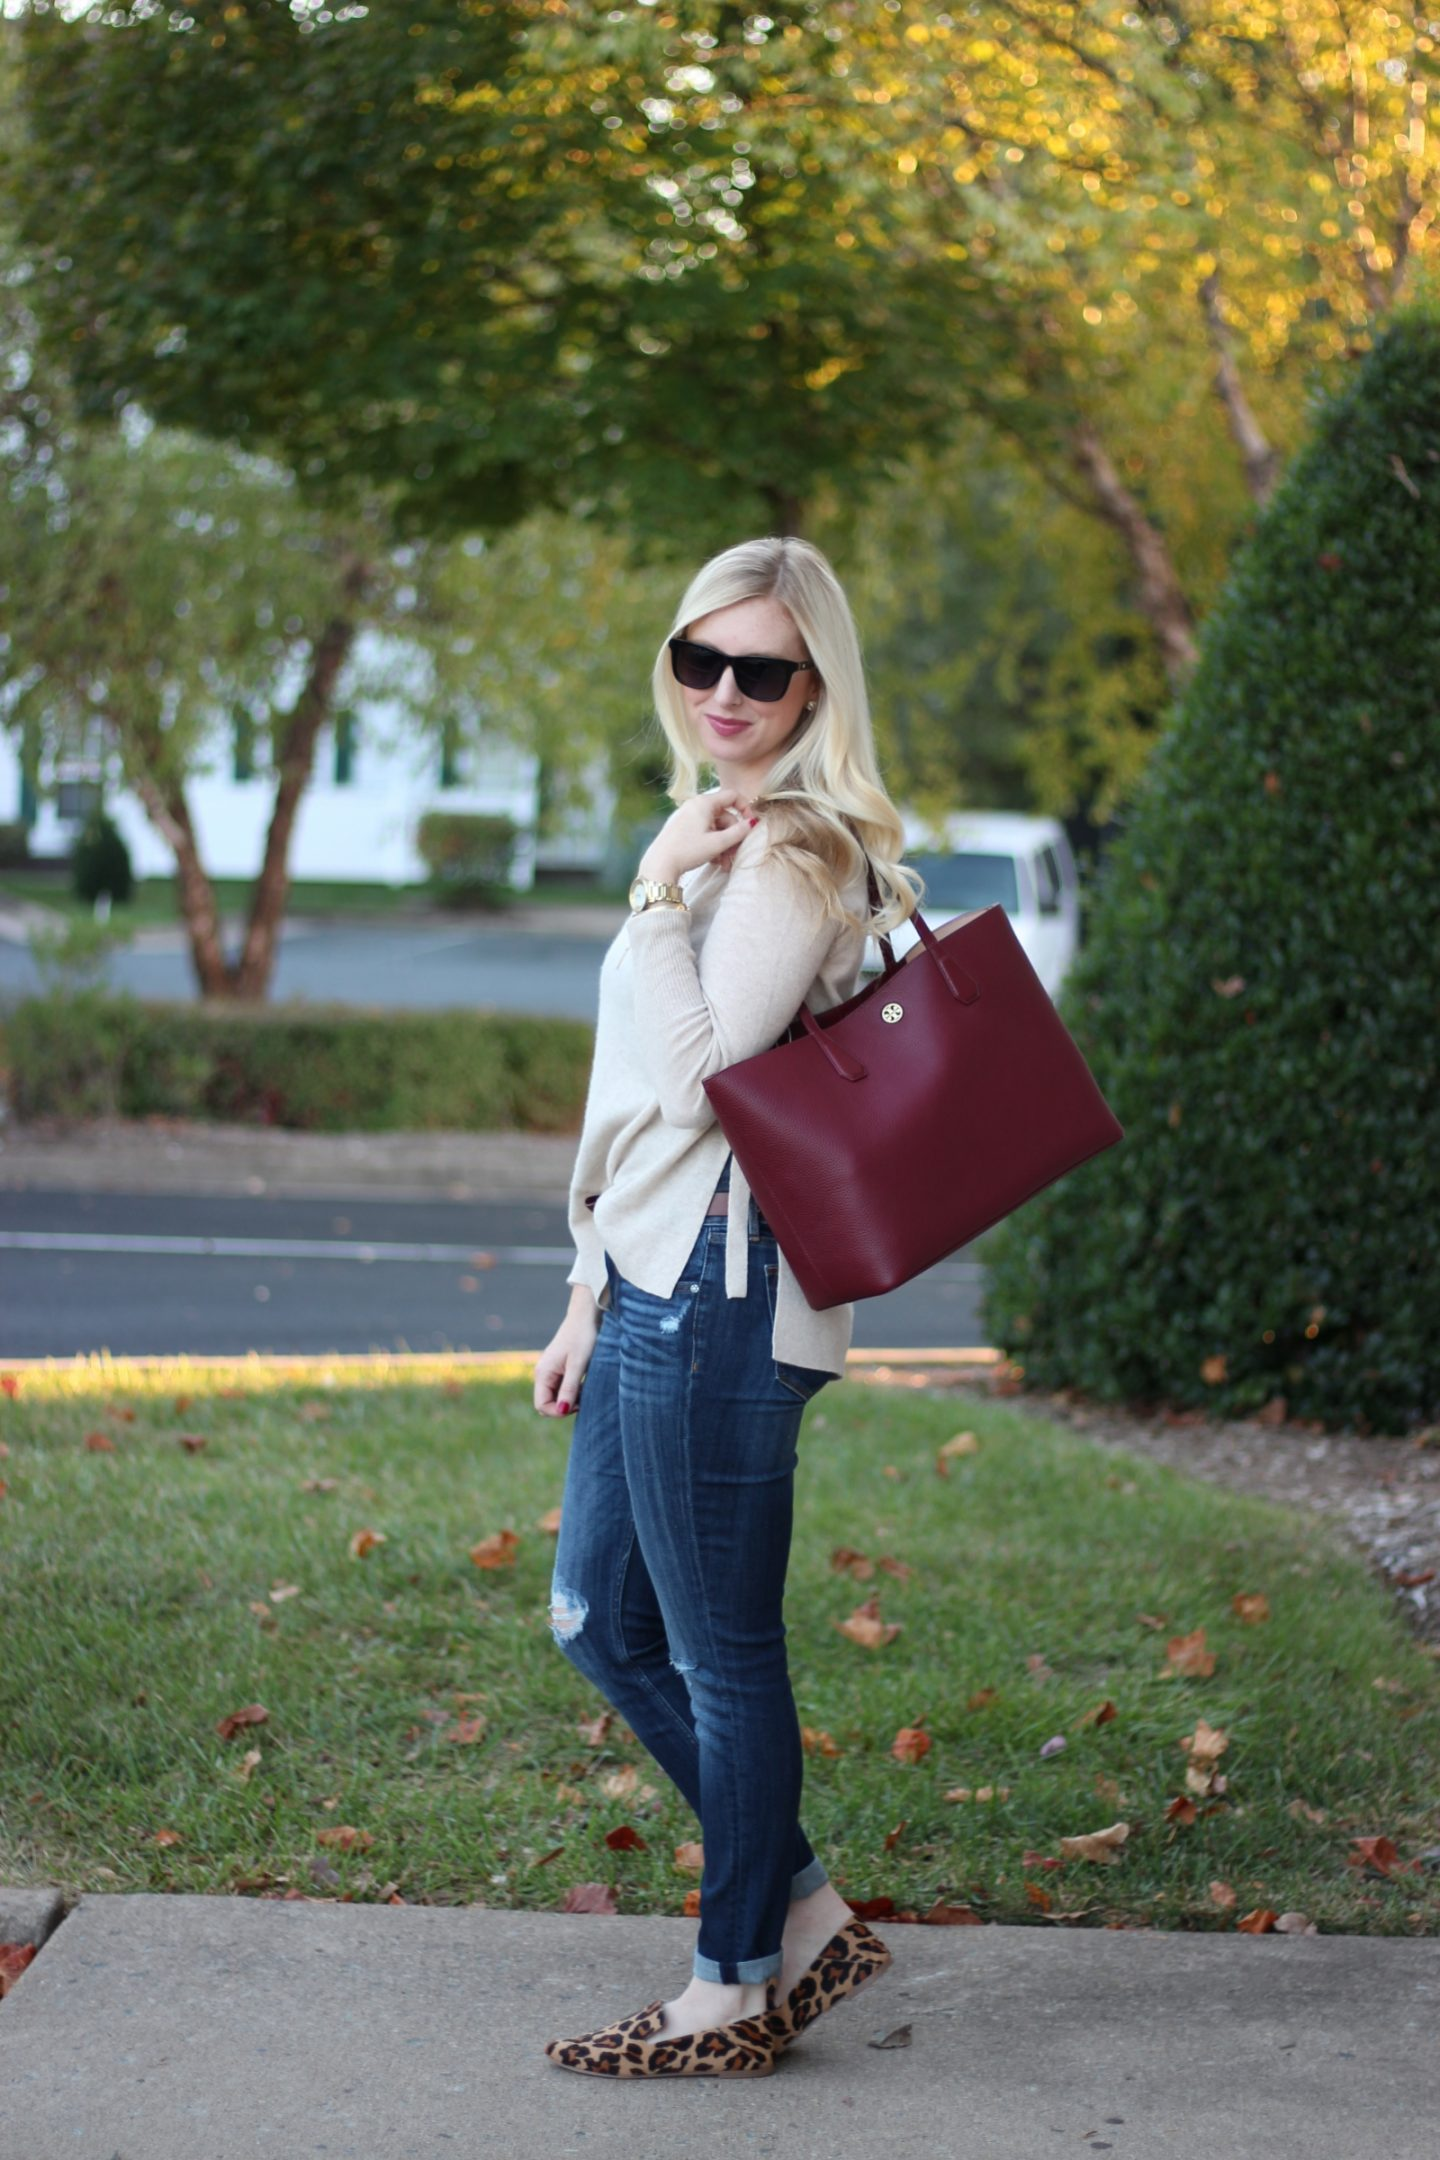 Sweater Weather & My 10 Favorite Fall Sweaters with Cute Details by Washington DC fashion blogger Styled Blonde